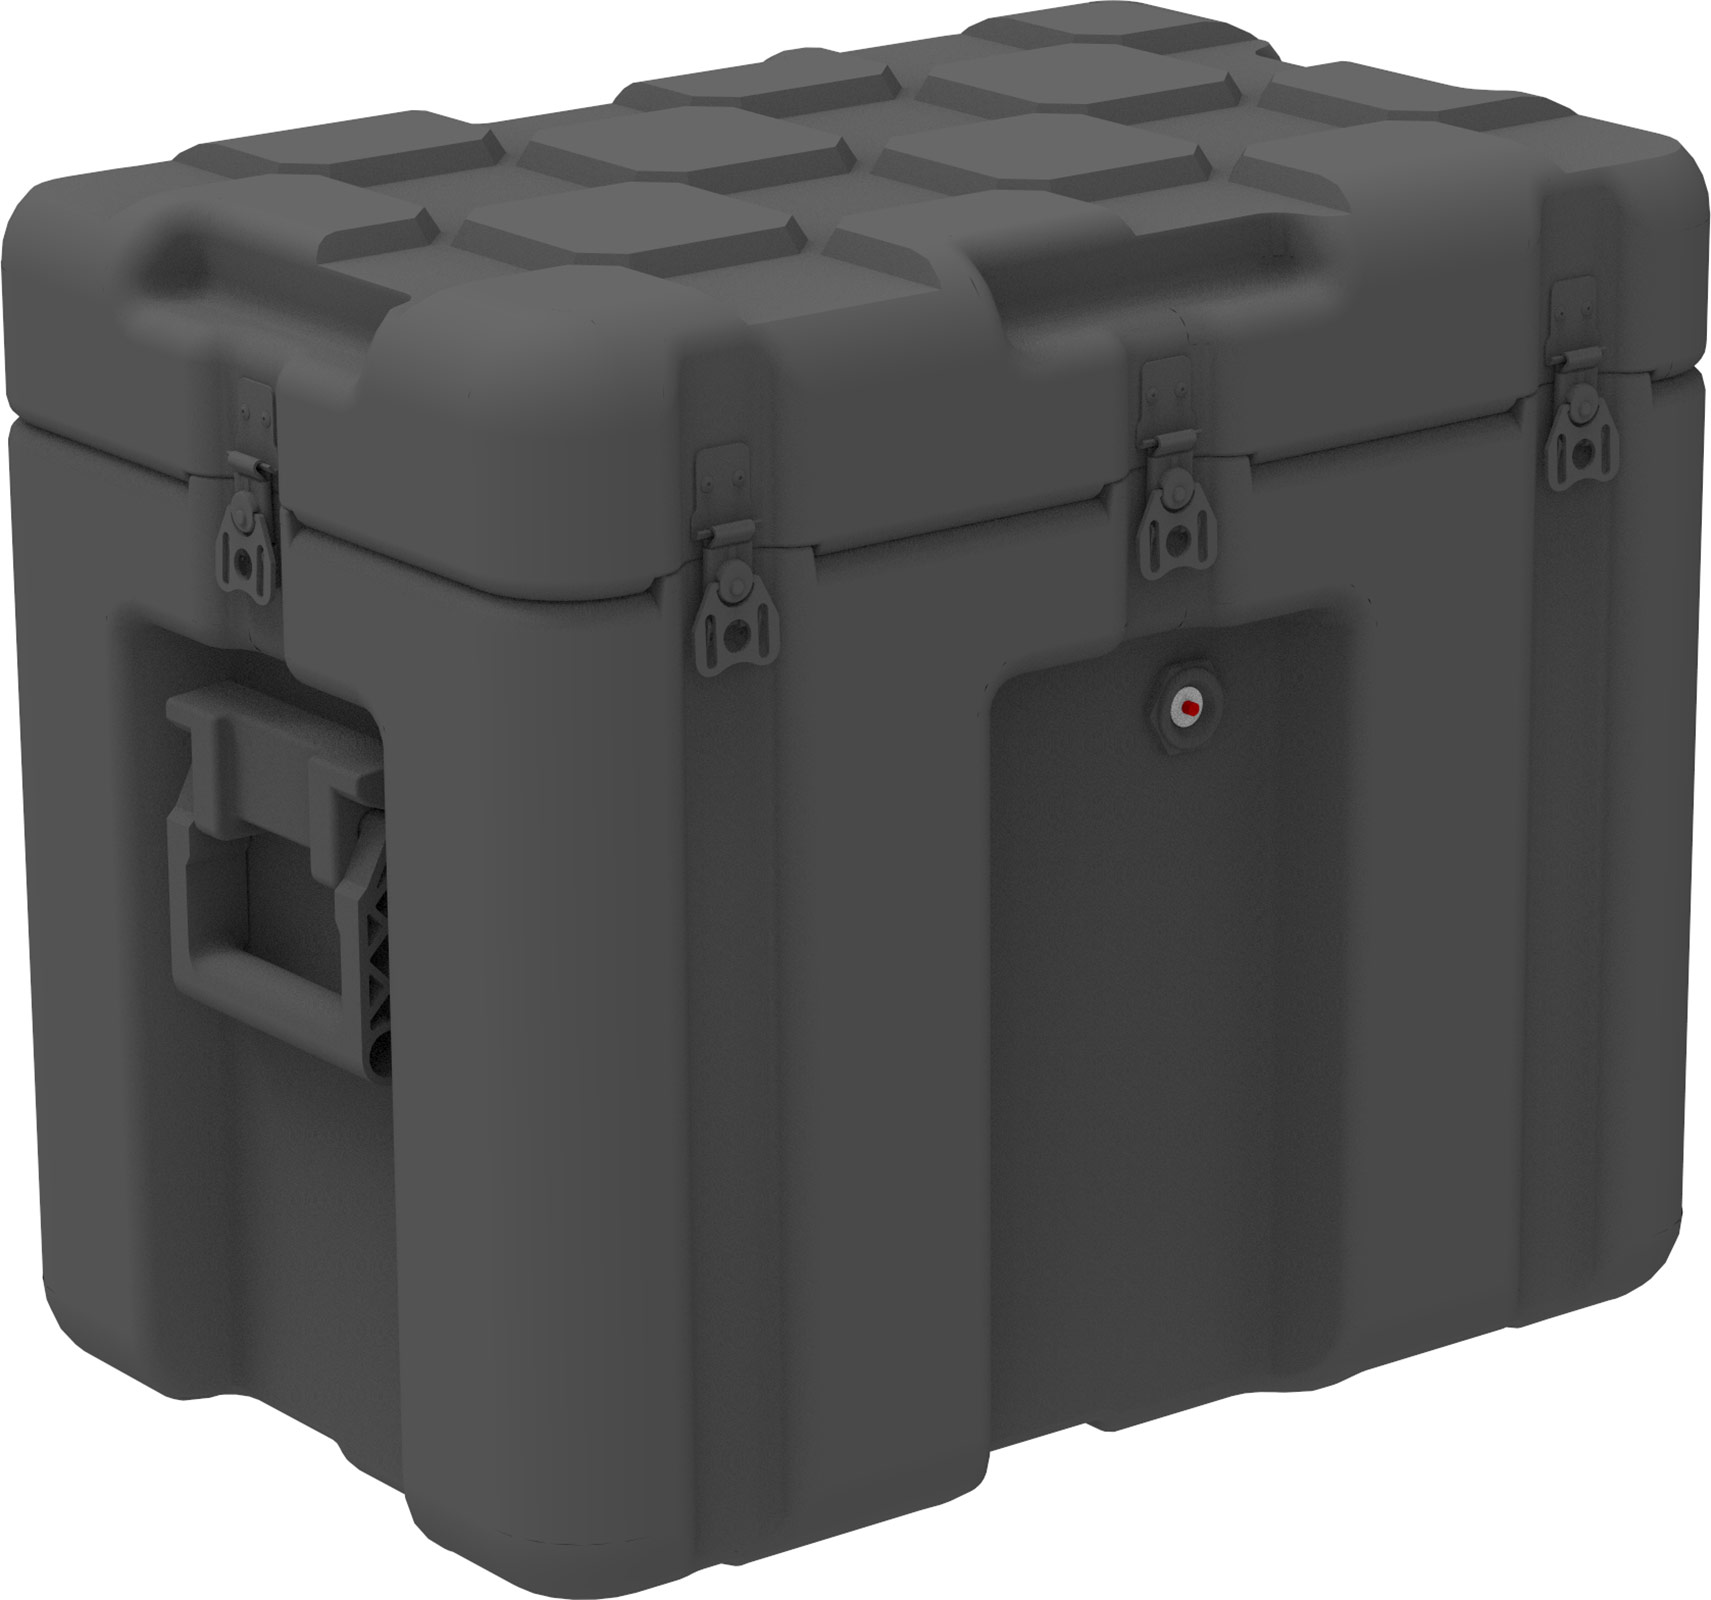 peli eu060040-4010-blk-032 isp2 shipping case